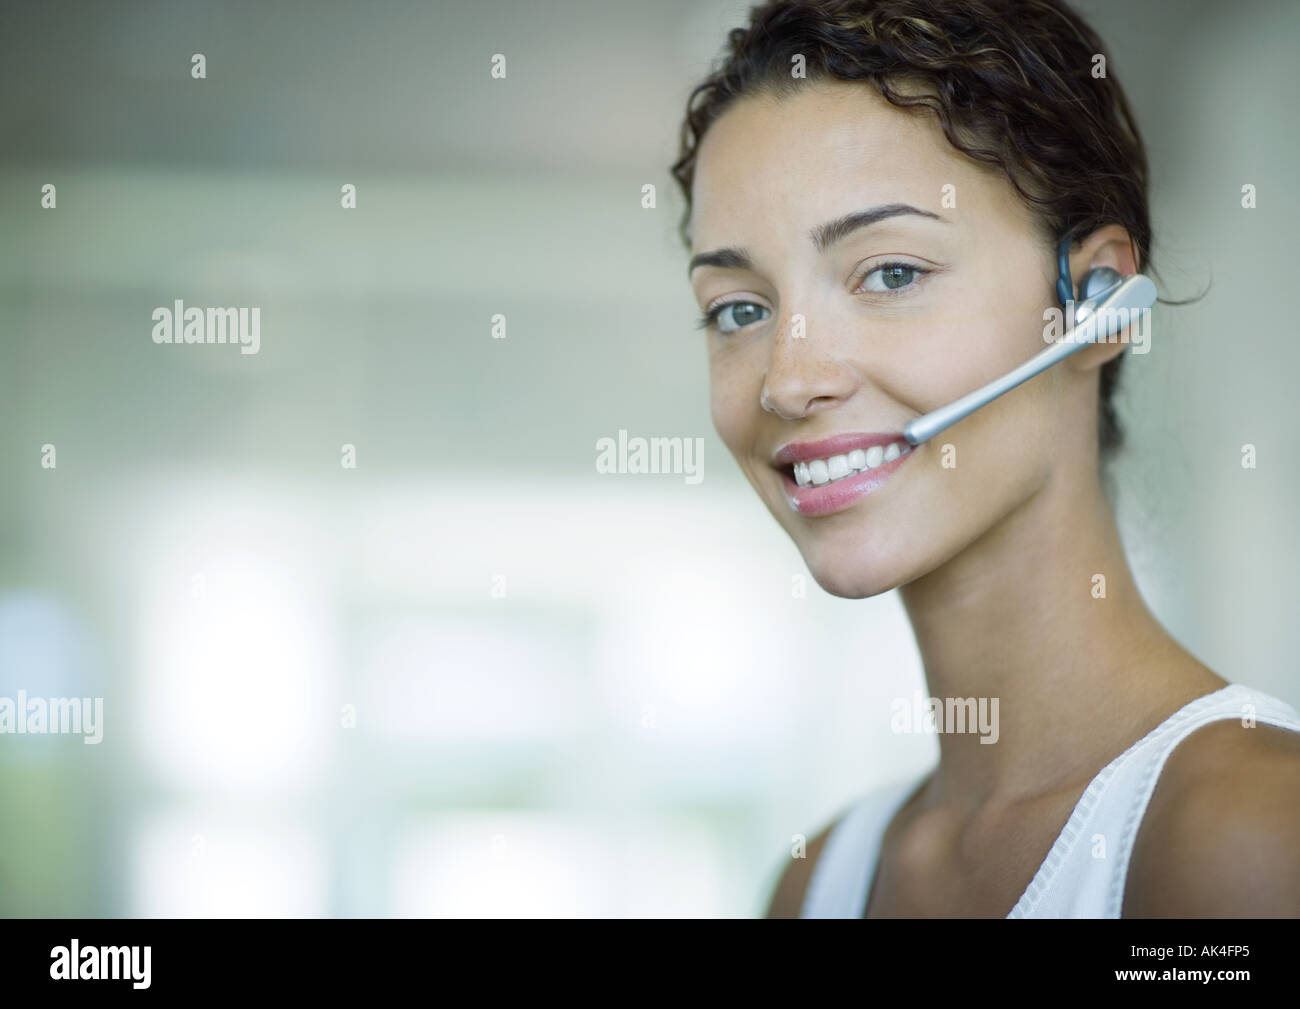 Woman wearing headset and smiling - Stock Image